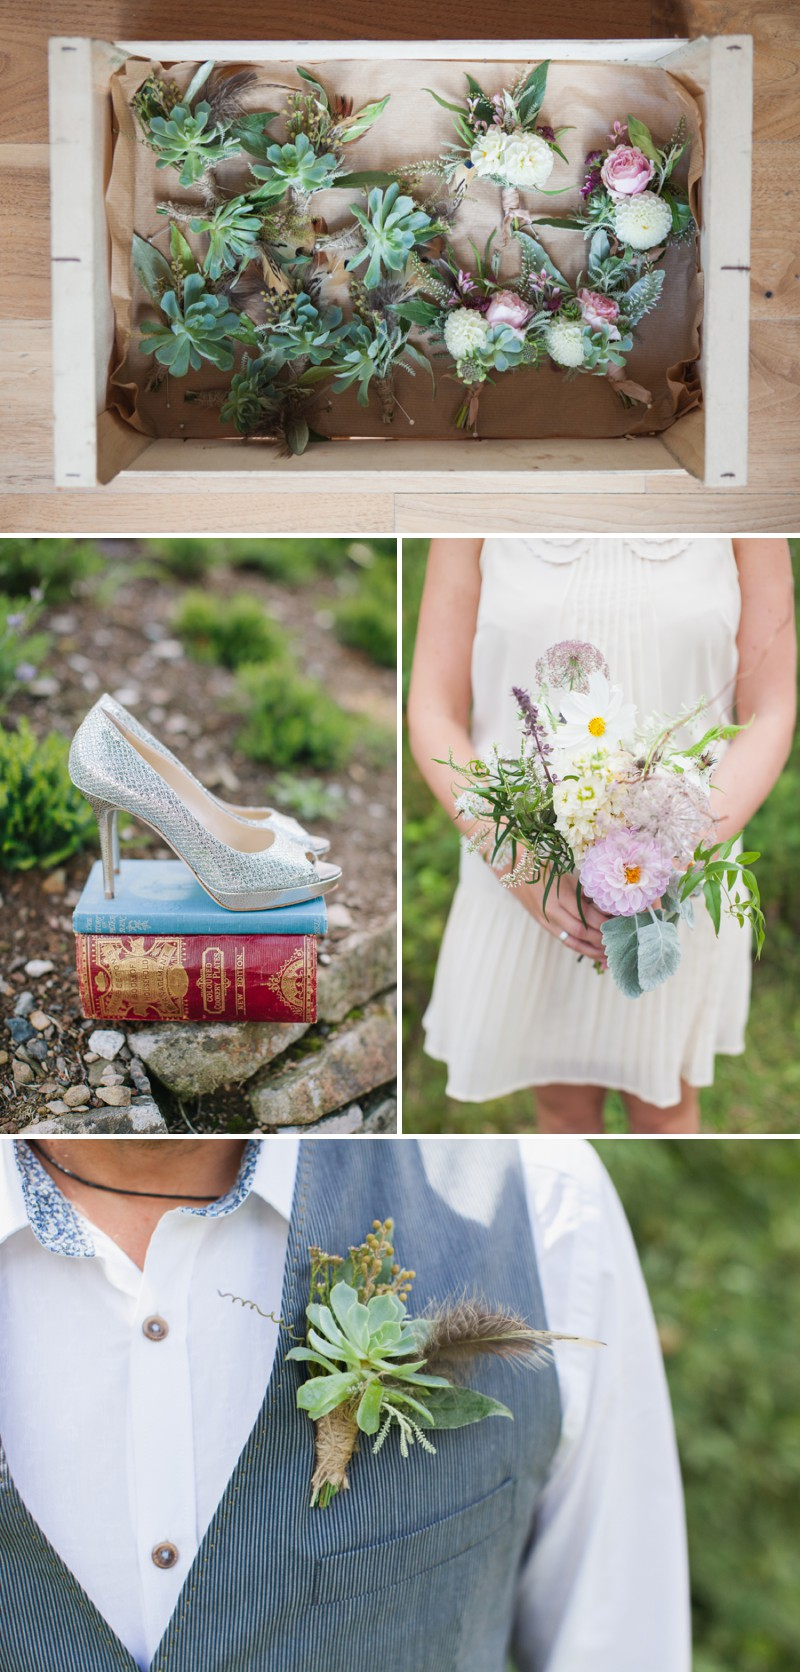 A Beautiful Rustic Peter Pan Themed Wedding With A Daughters Of Simone Wedding Dress At Trevenna Barns in Cornwall With Photography By Hayley Savage._0002